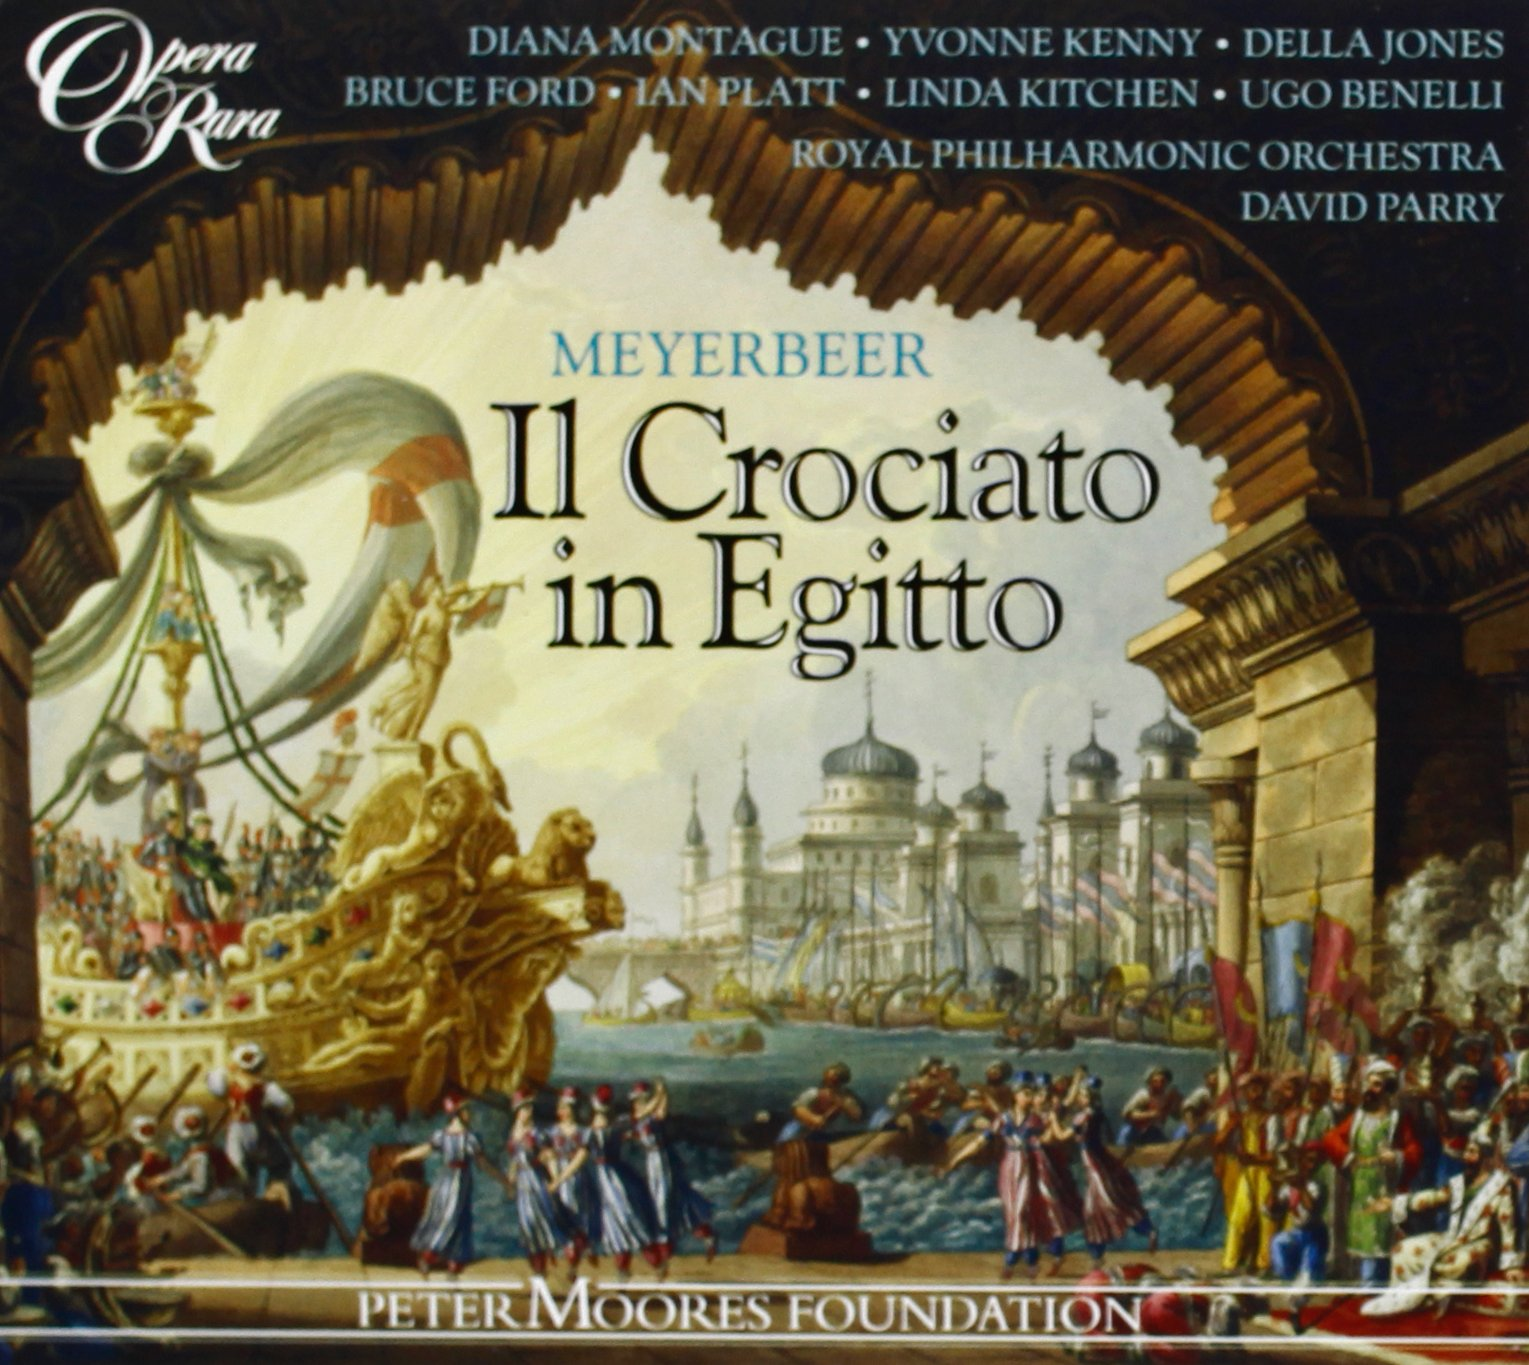 Meyerbeer - Il Crociato in Egitto / Y. Kenny · D. Jones · Montague · B. Ford · Benelli · Kitchen · Royal PO · D. Parry by Opera Rara (UK)